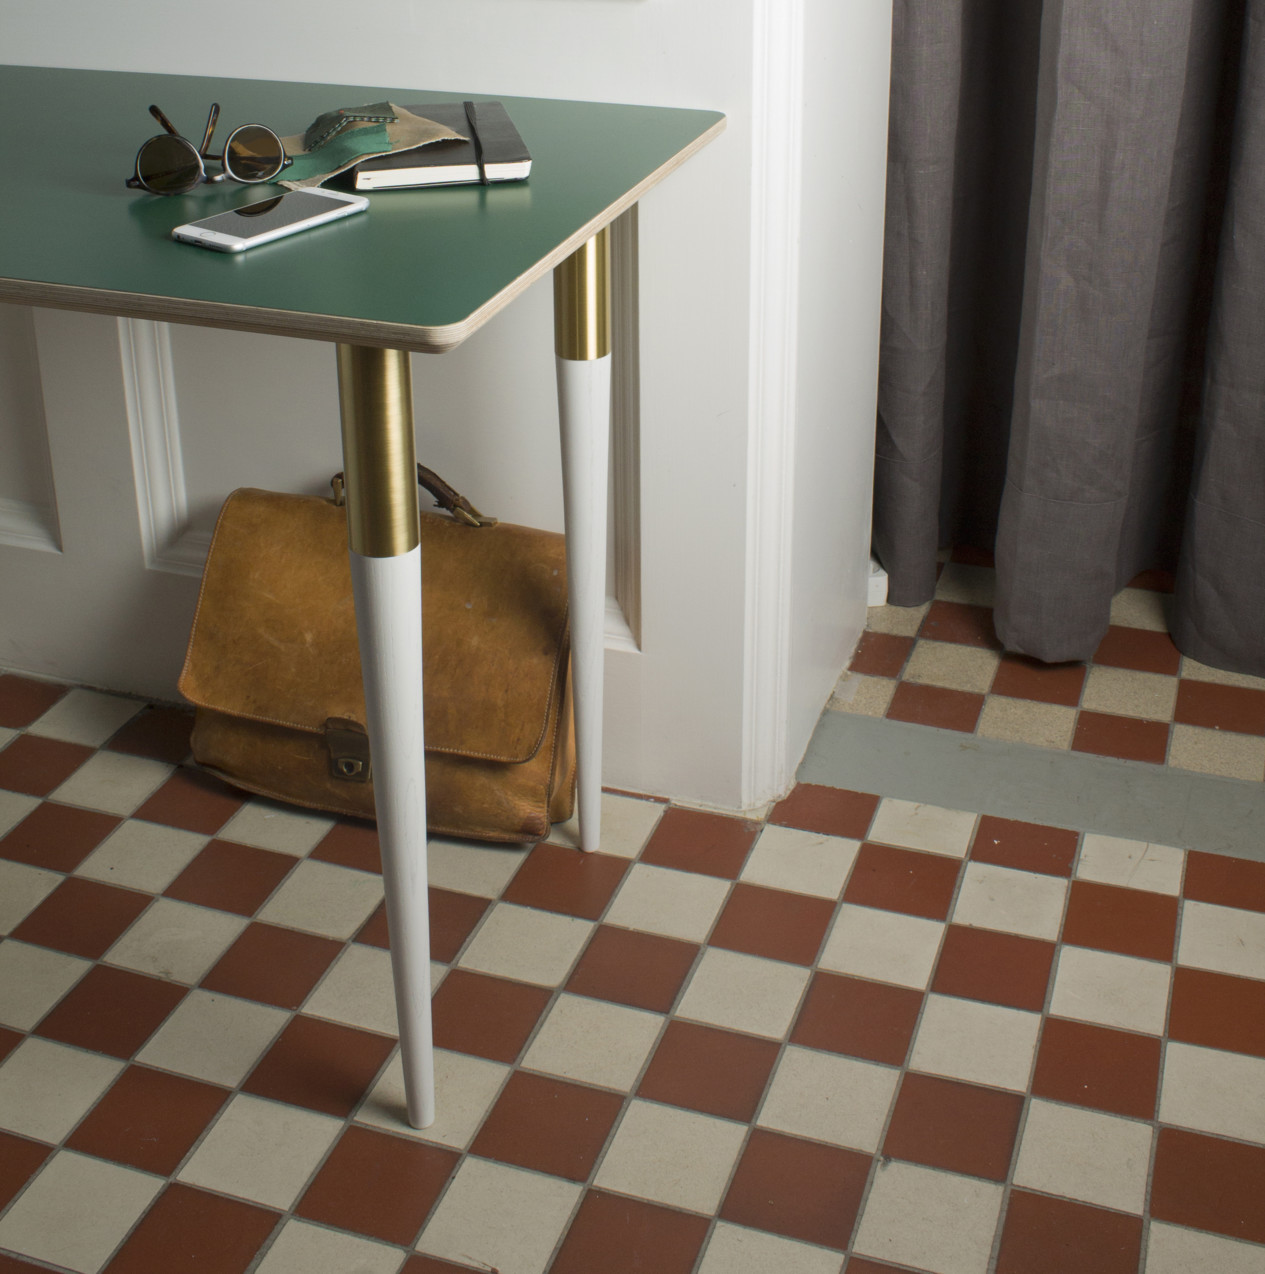 Coffee Table Replacement Legs: Buy Replacement Table Legs For IKEA Tops